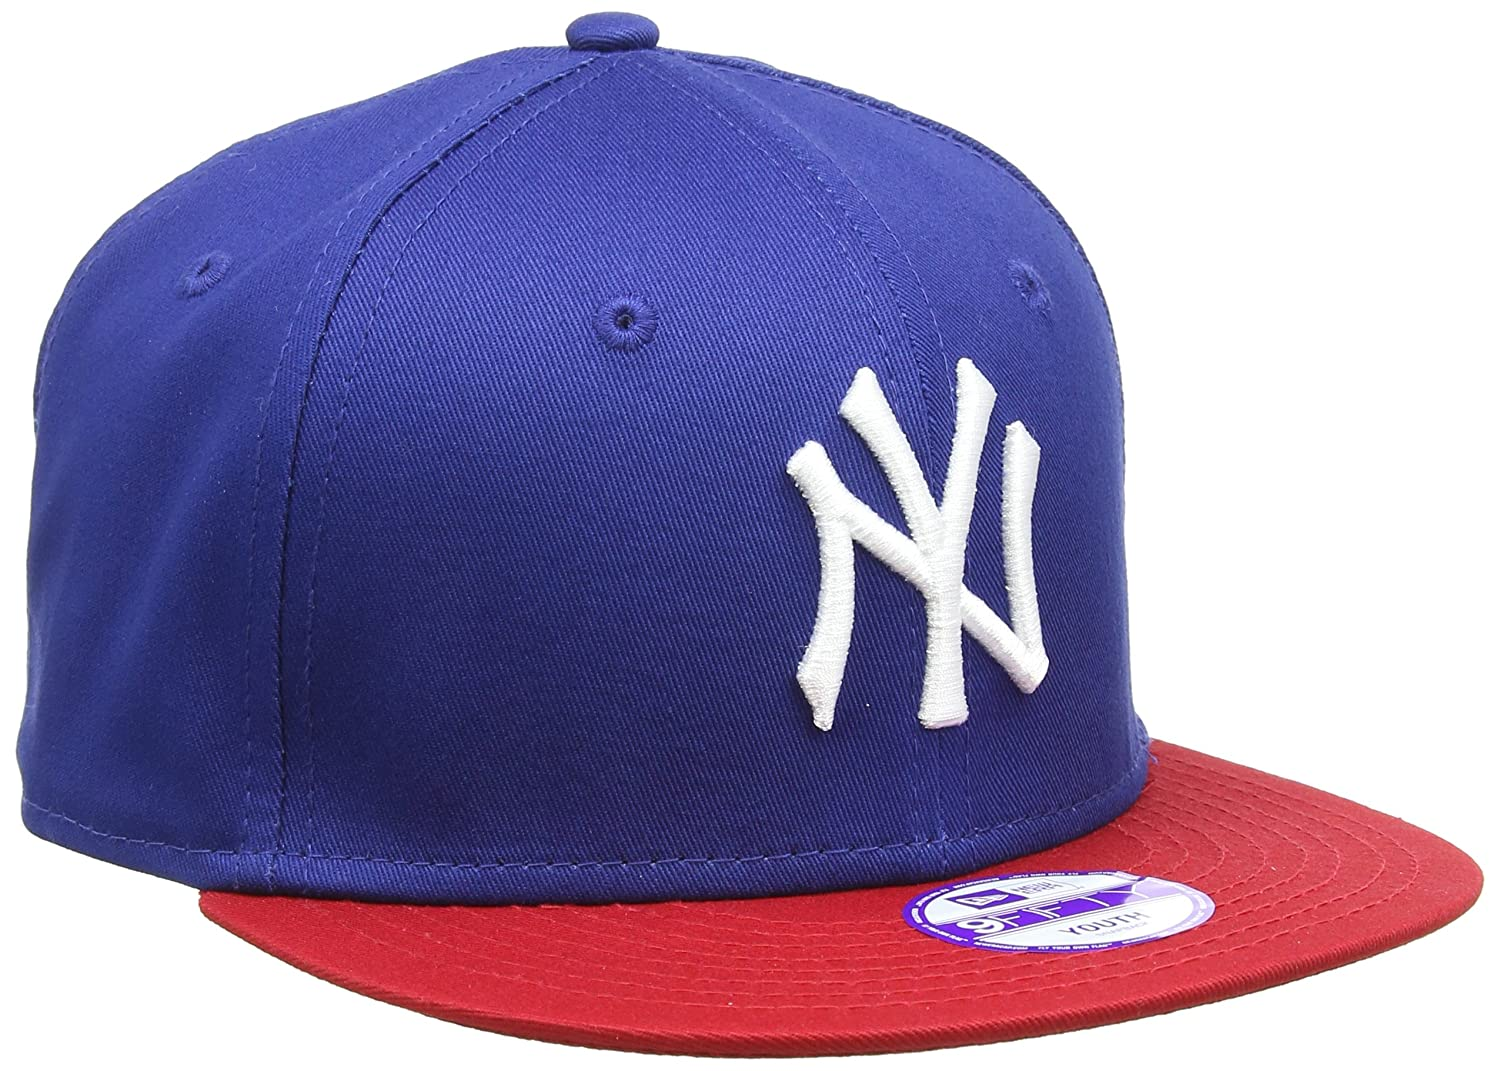 New Era Era, Cappellino da baseball Bambino MLB 9 Fifty Block NY Yankees Snapback 10880042